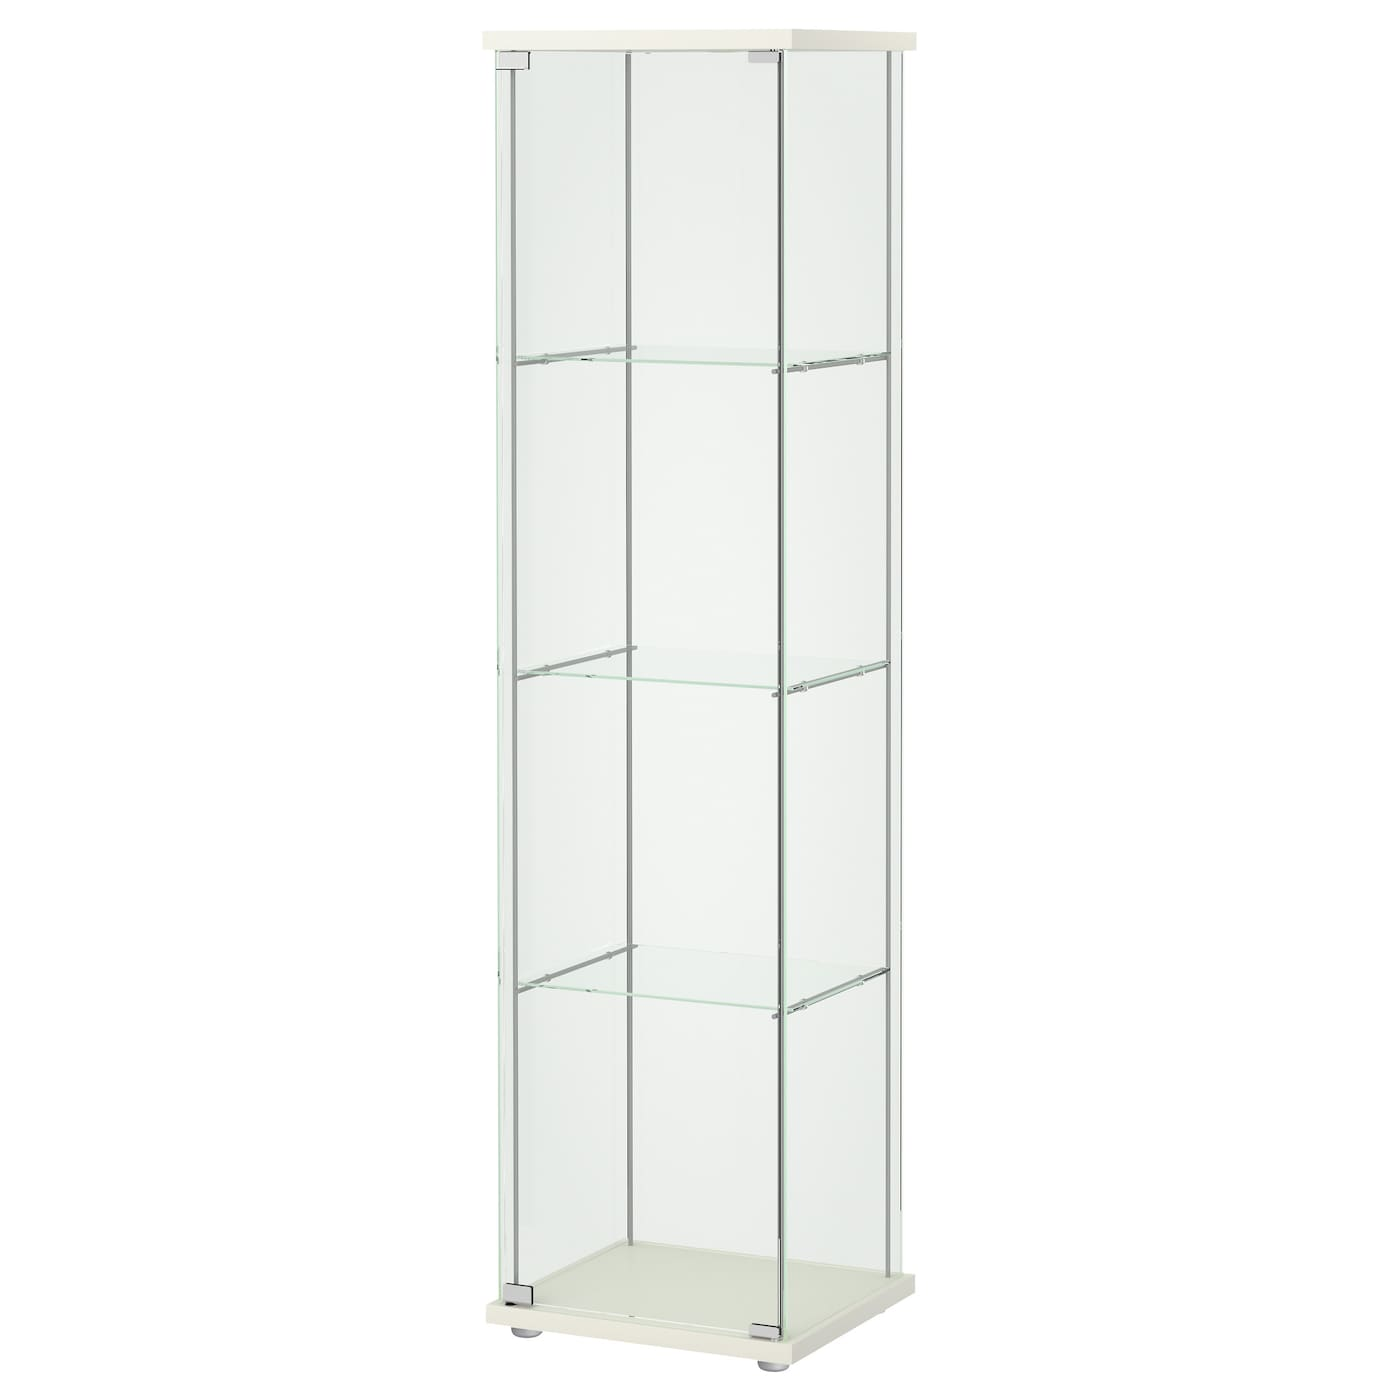 Detolf glass door cabinet white 43x163 cm ikea for Ikea glass door wall cabinet